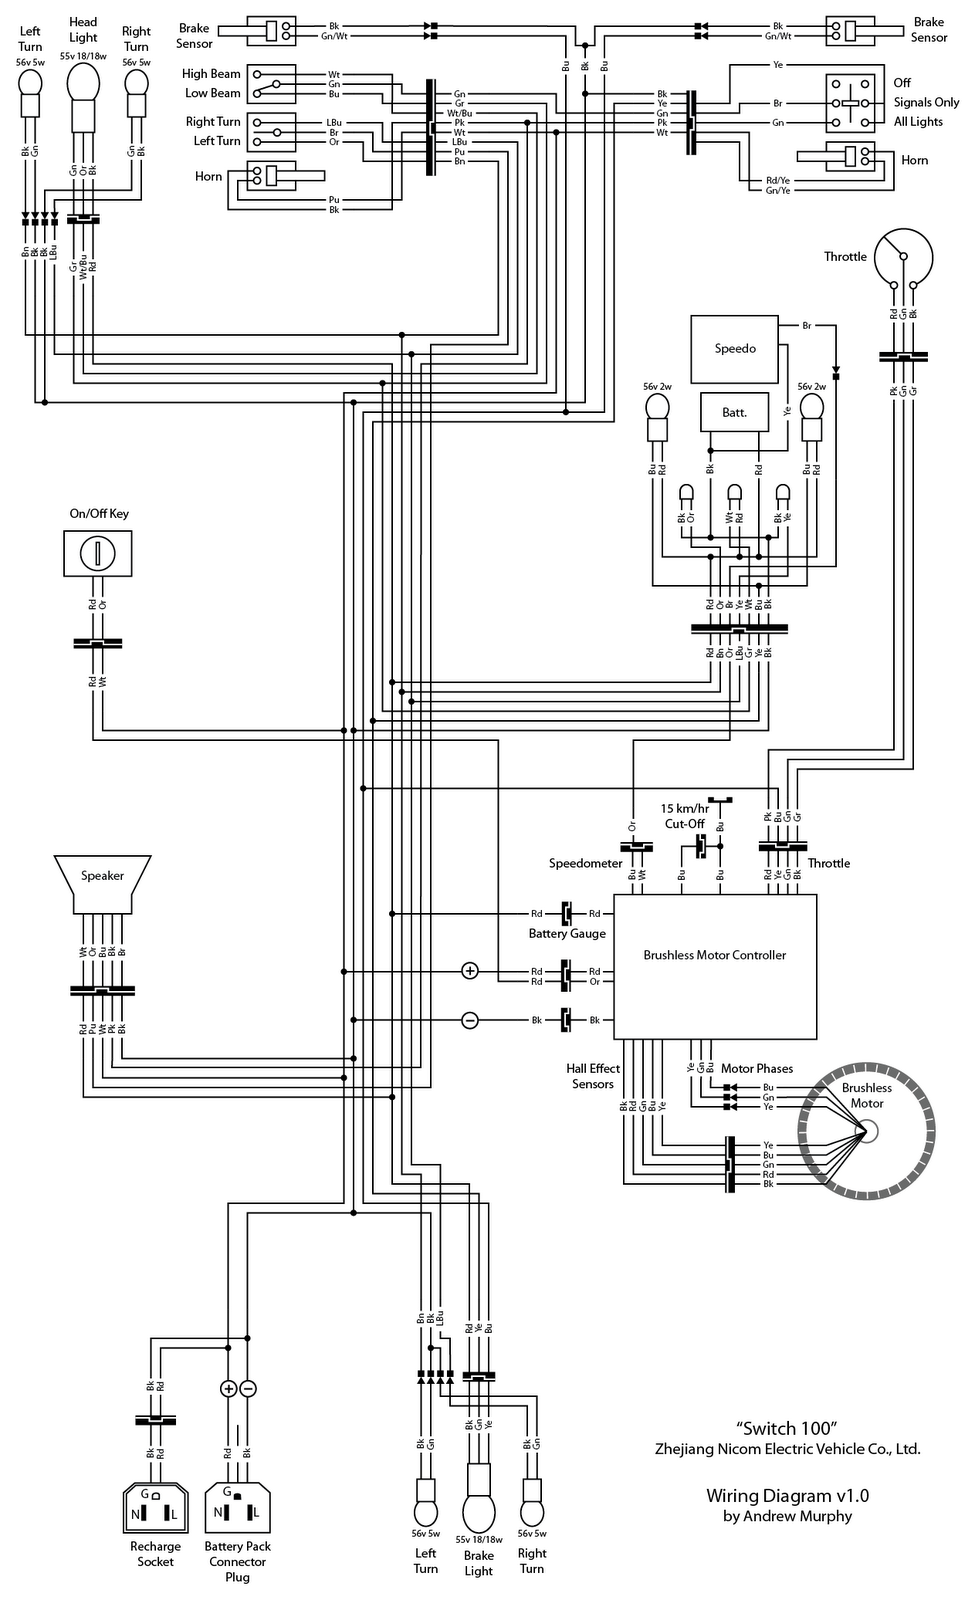 andr01dmake: ebike: updated battery & wiring diagrams